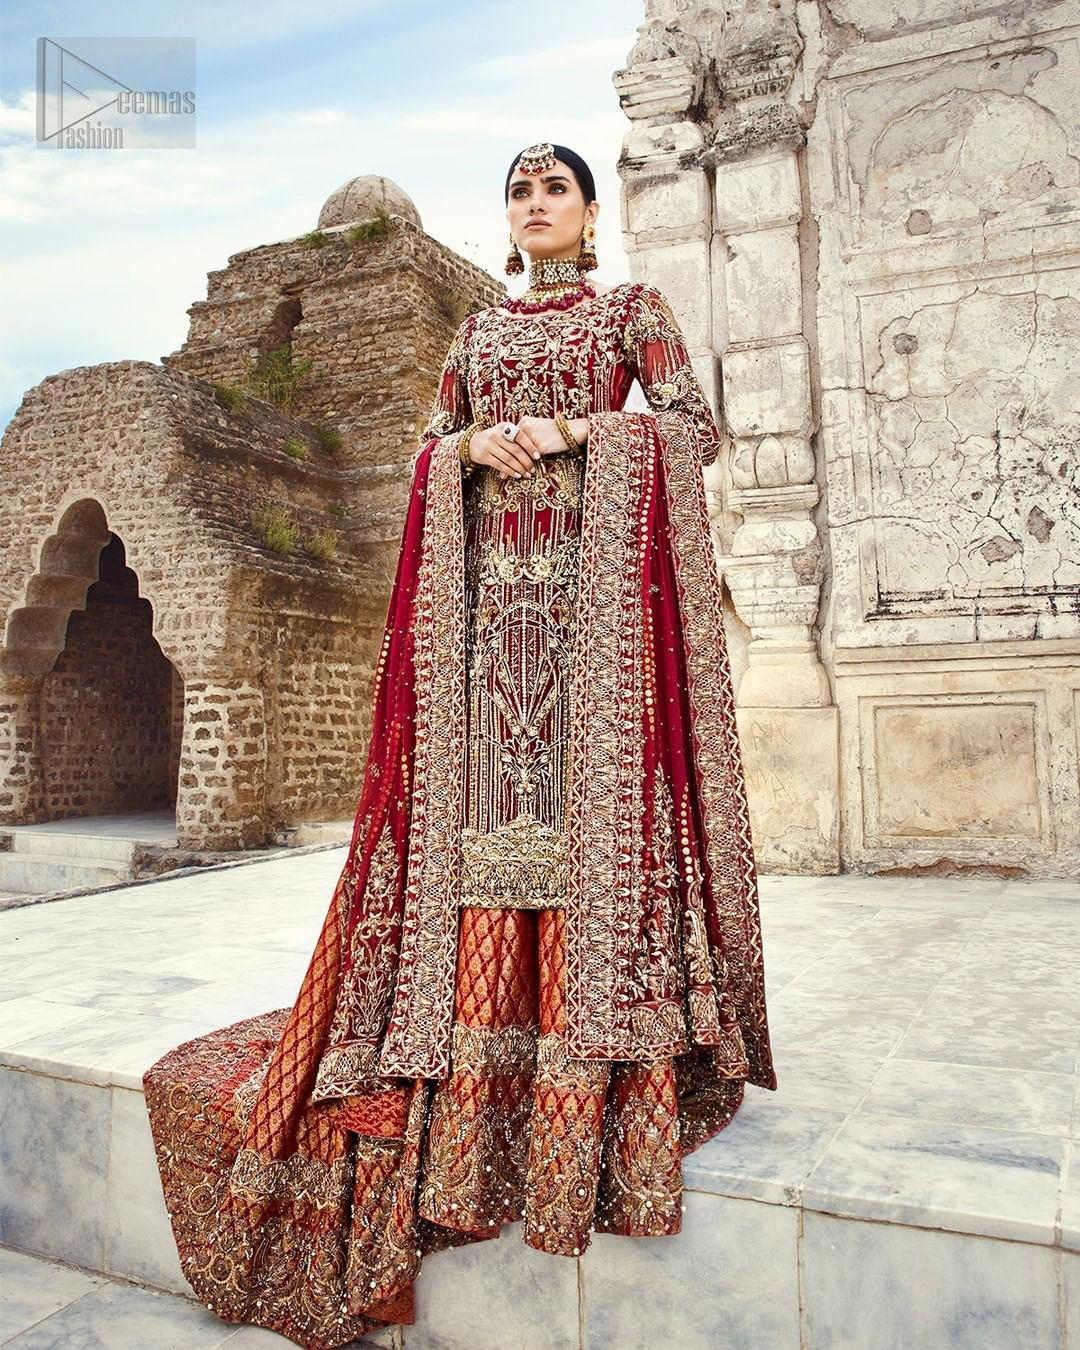 You are all set to make a lasting impact with the divine royalty of this dress. This beautiful dress comes with a maroon back train lehenga with beautiful embellishment around the hem. The shirt is adoned with golden zardozi work around the neckline and vertically worked gold lines and it finished with a thick embellished border. The sleeves are embellished with motifs all over along with a thick embroidered border. The dupatta incorporates beautifully designed borders on all four sides, focusing on the heavily embellished pallu borders to give it a perfect maharani look.